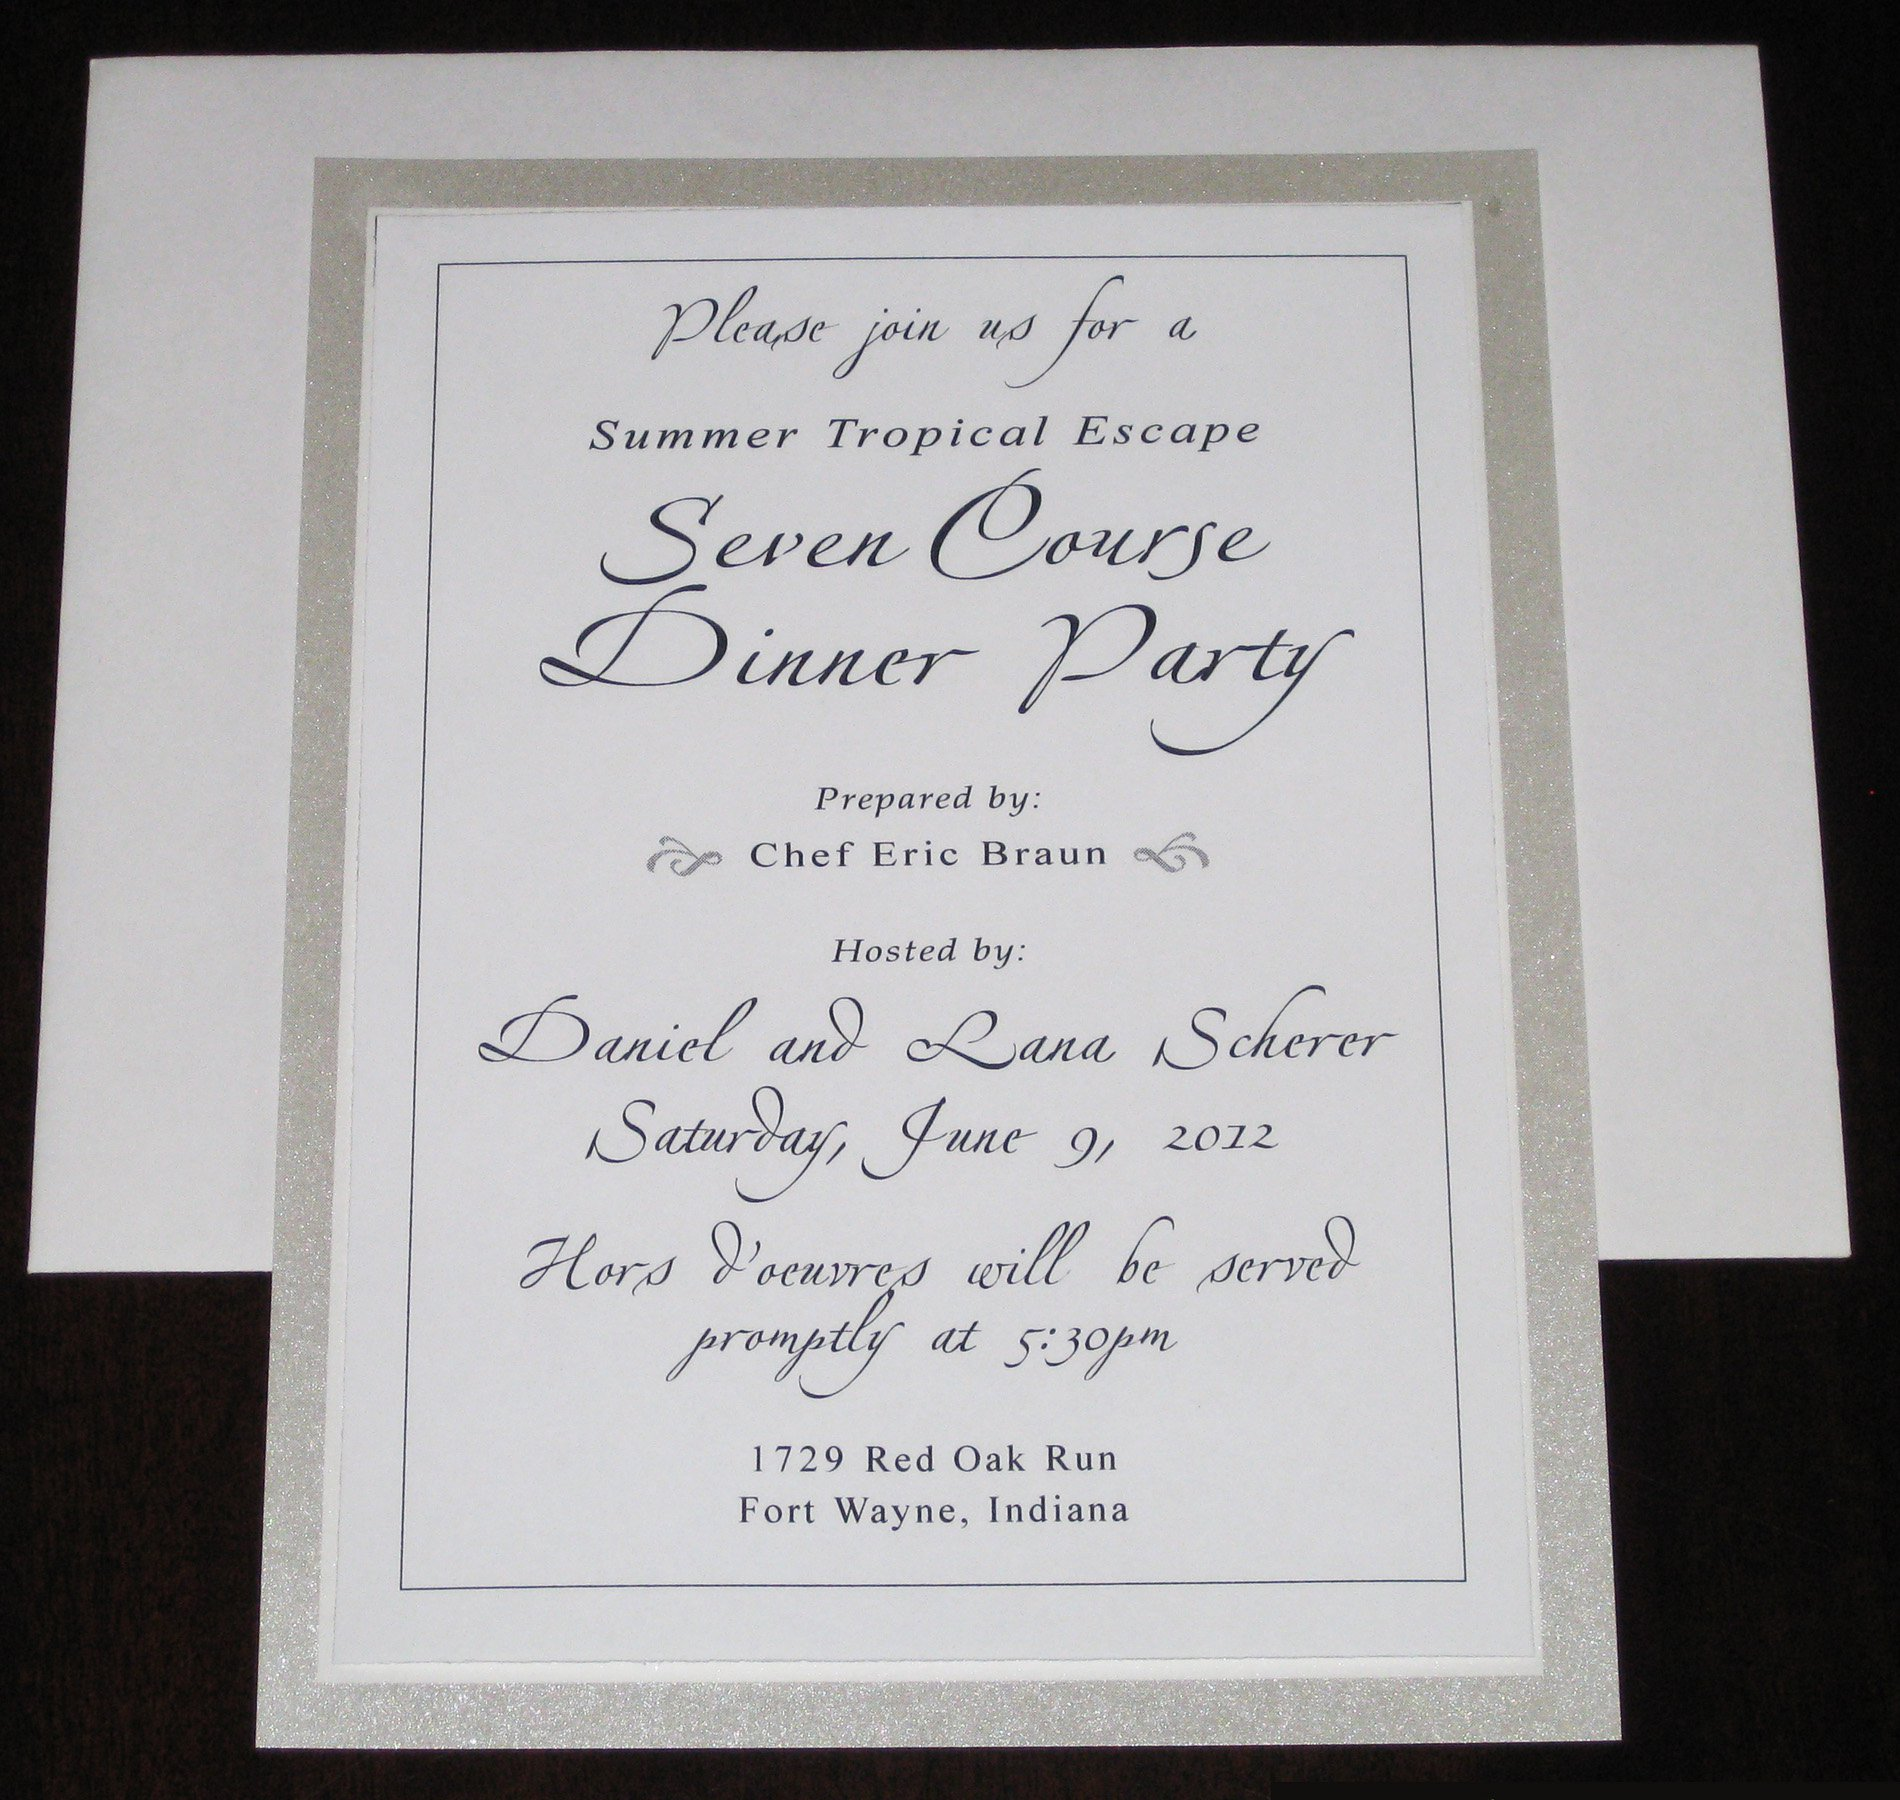 Formal Dinner Invitation Letter restaurant menu planning template ...